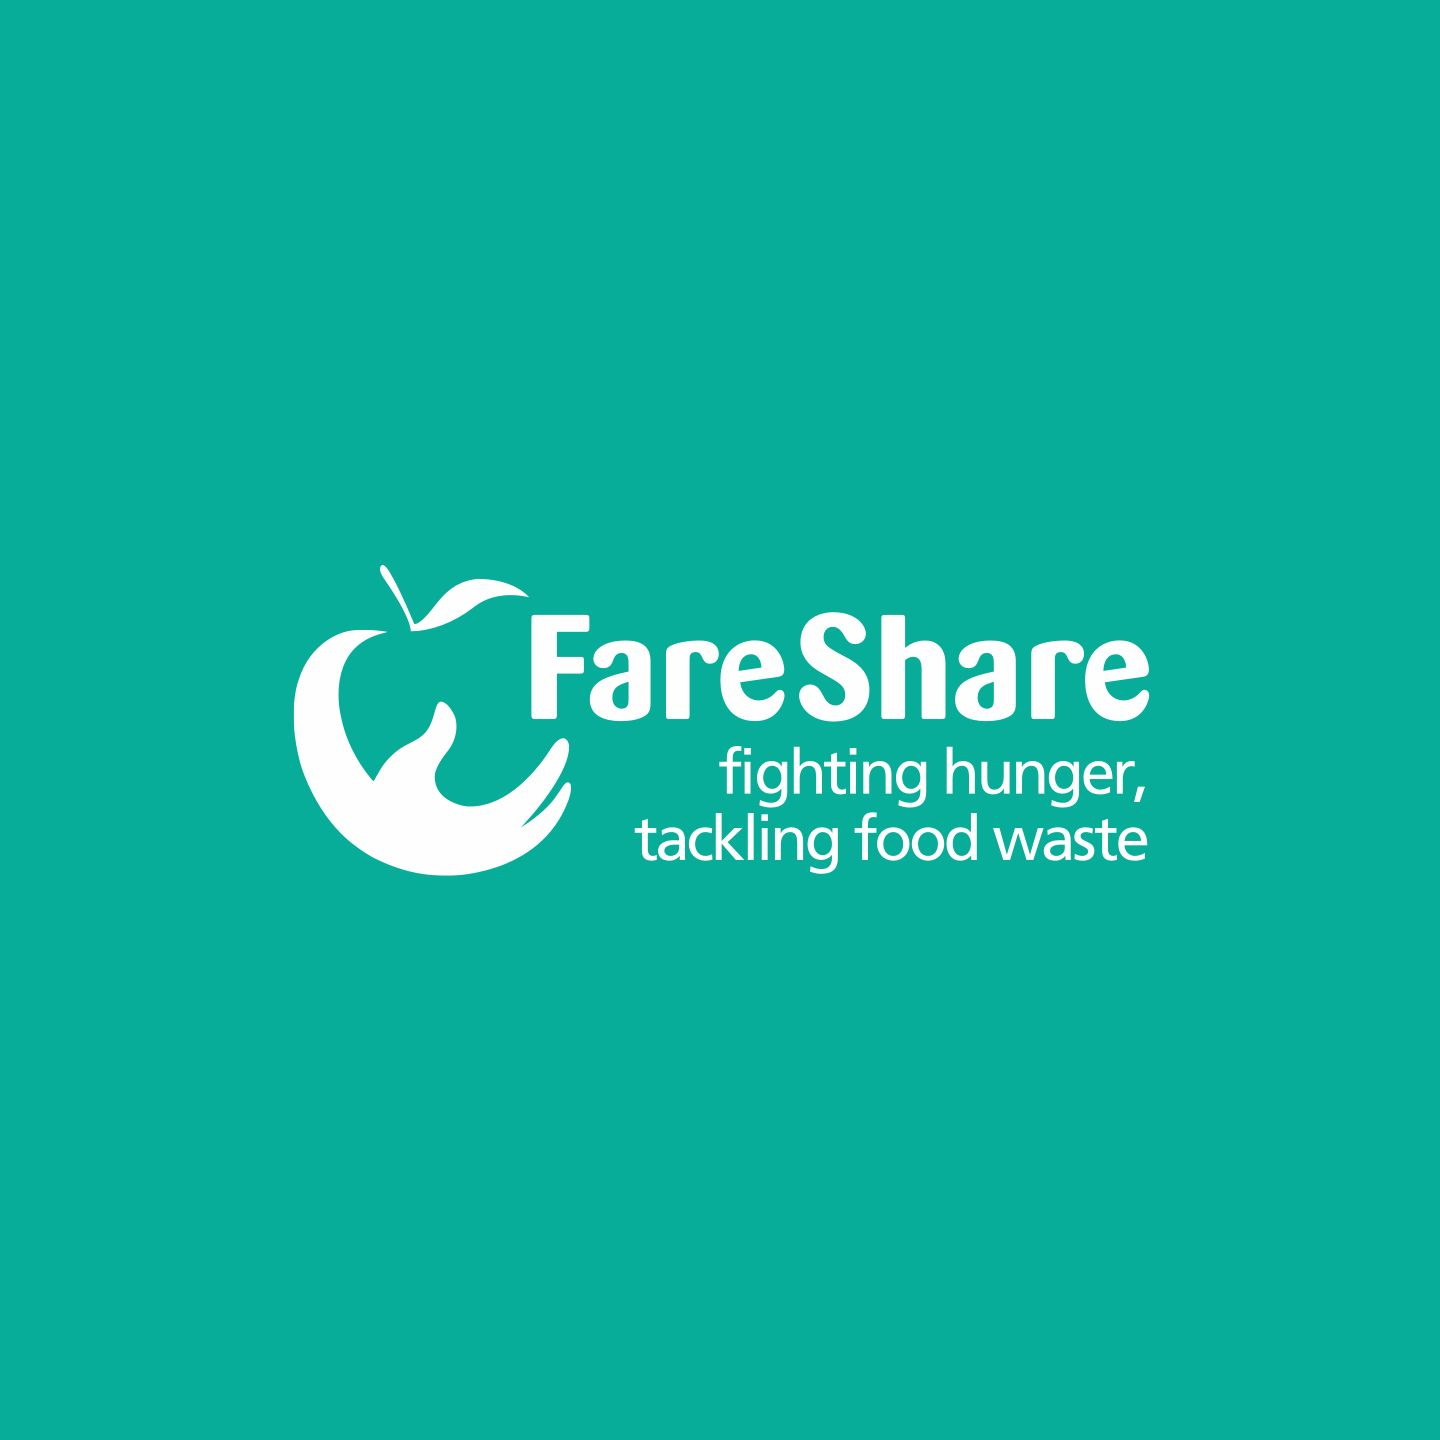 Fareshare Logo on teal background